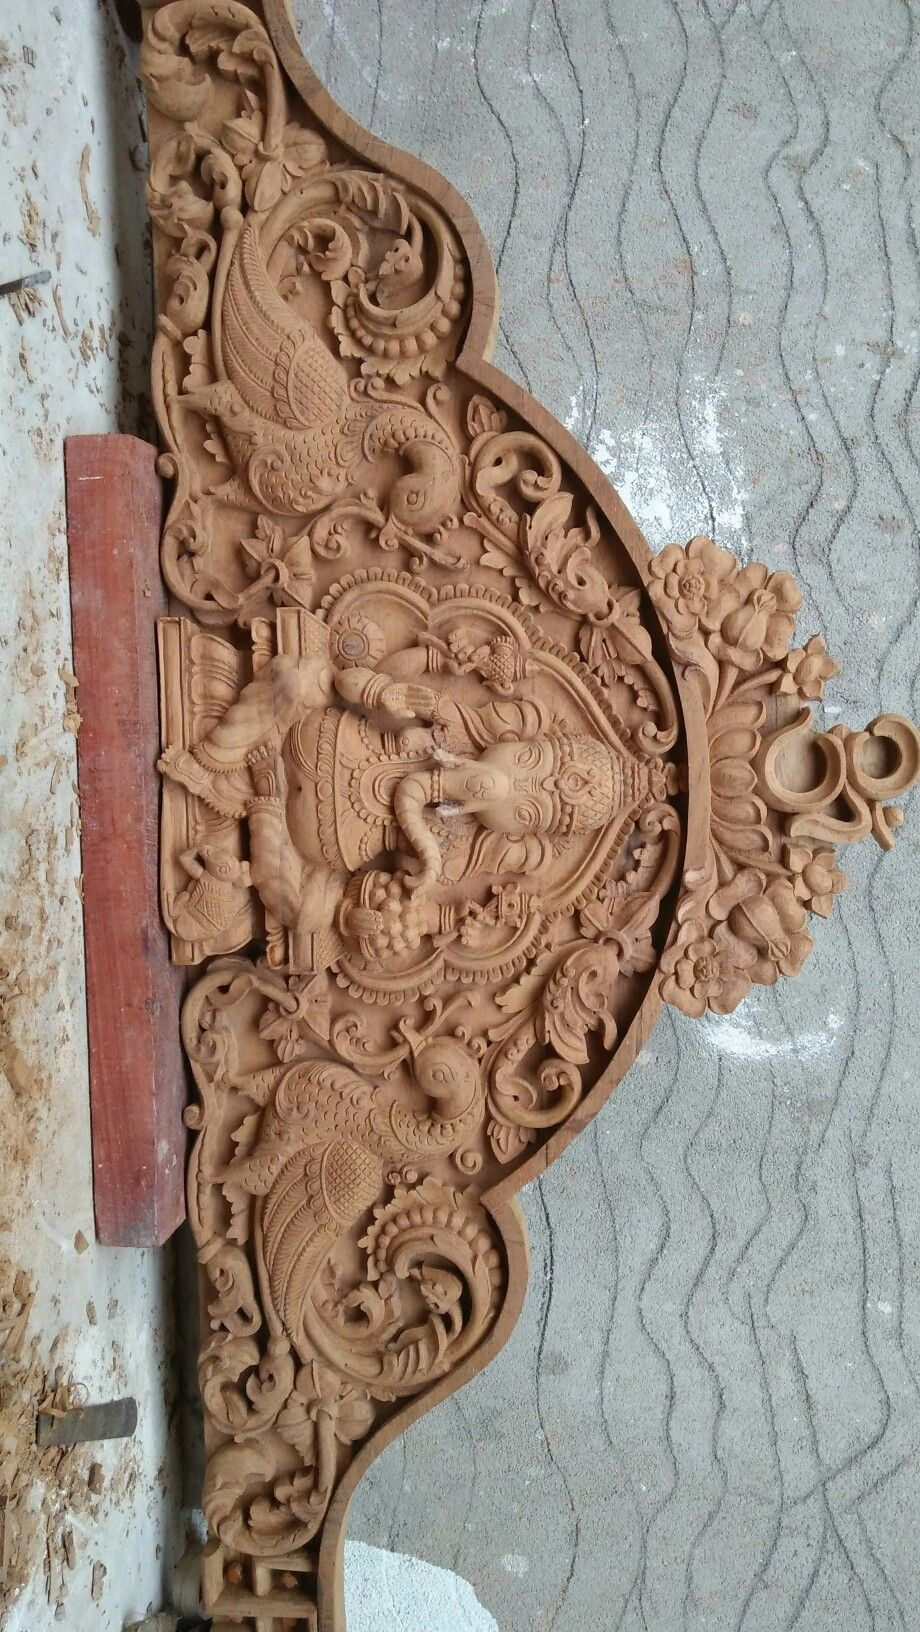 Pooja Room Door Carving Designs Google Search: Pin By Balaji.m On Entrance Doors In 2019